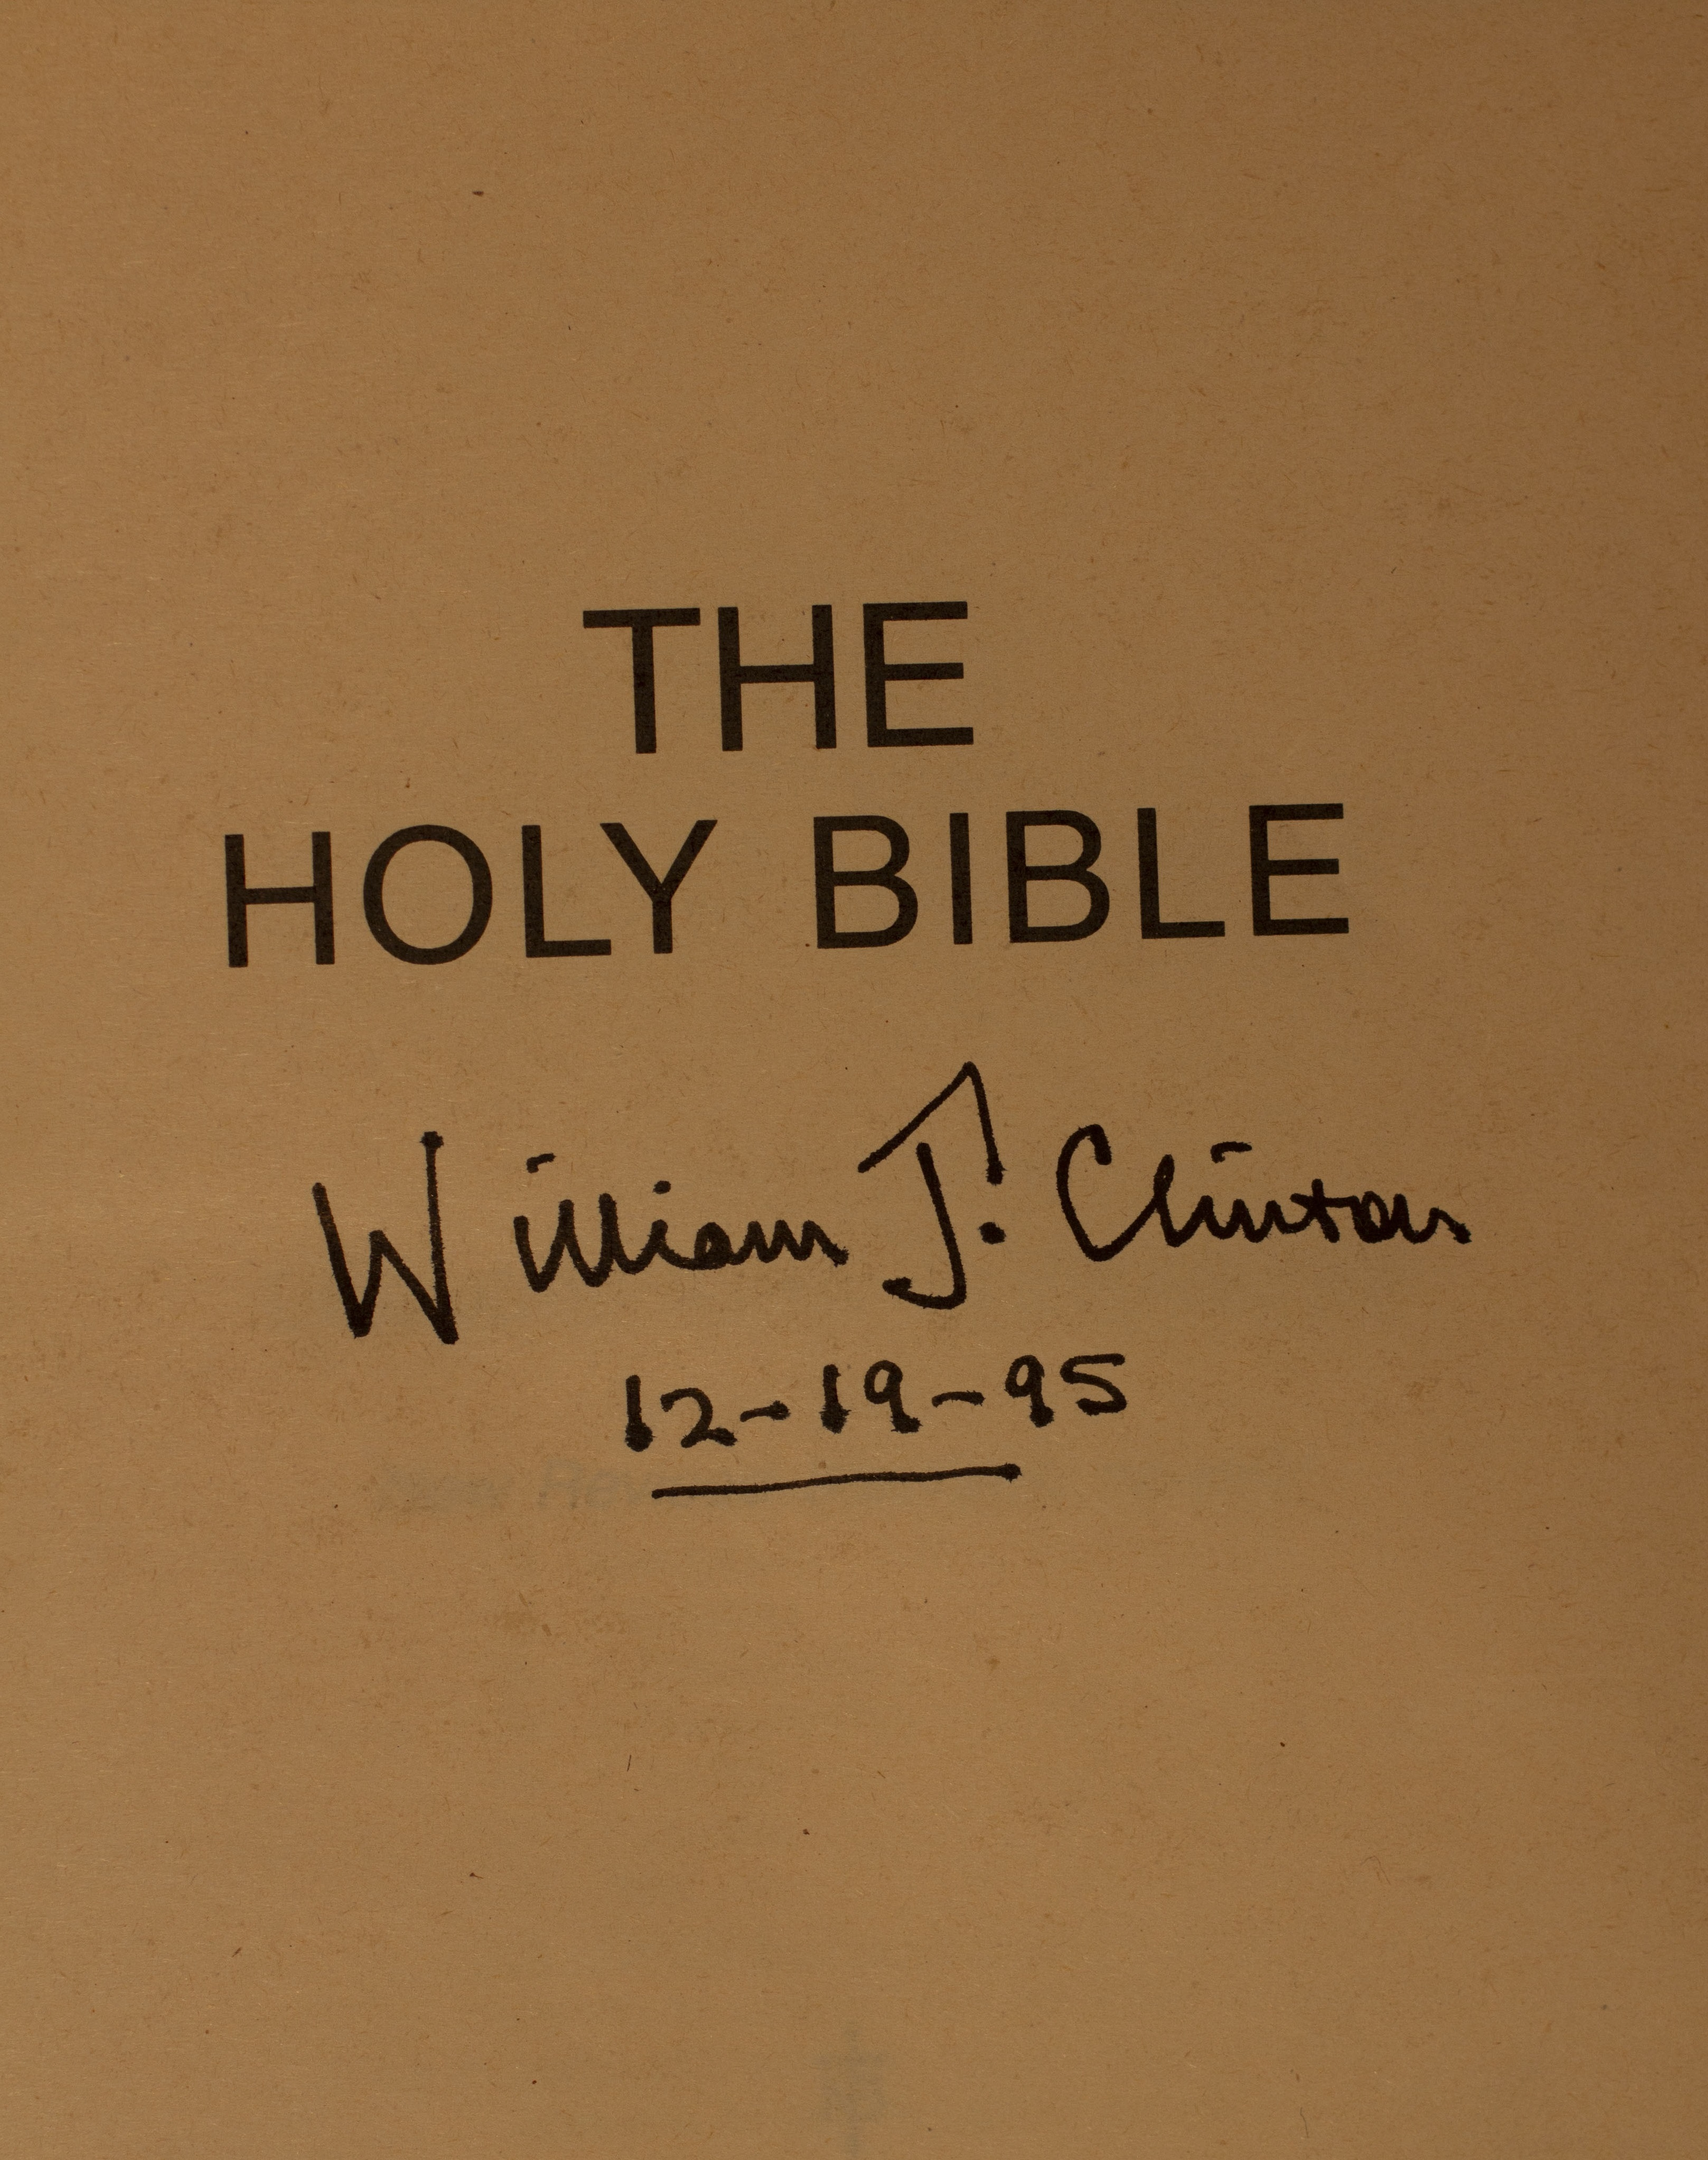 New Revised Standard Version Bible signed by President Clinton